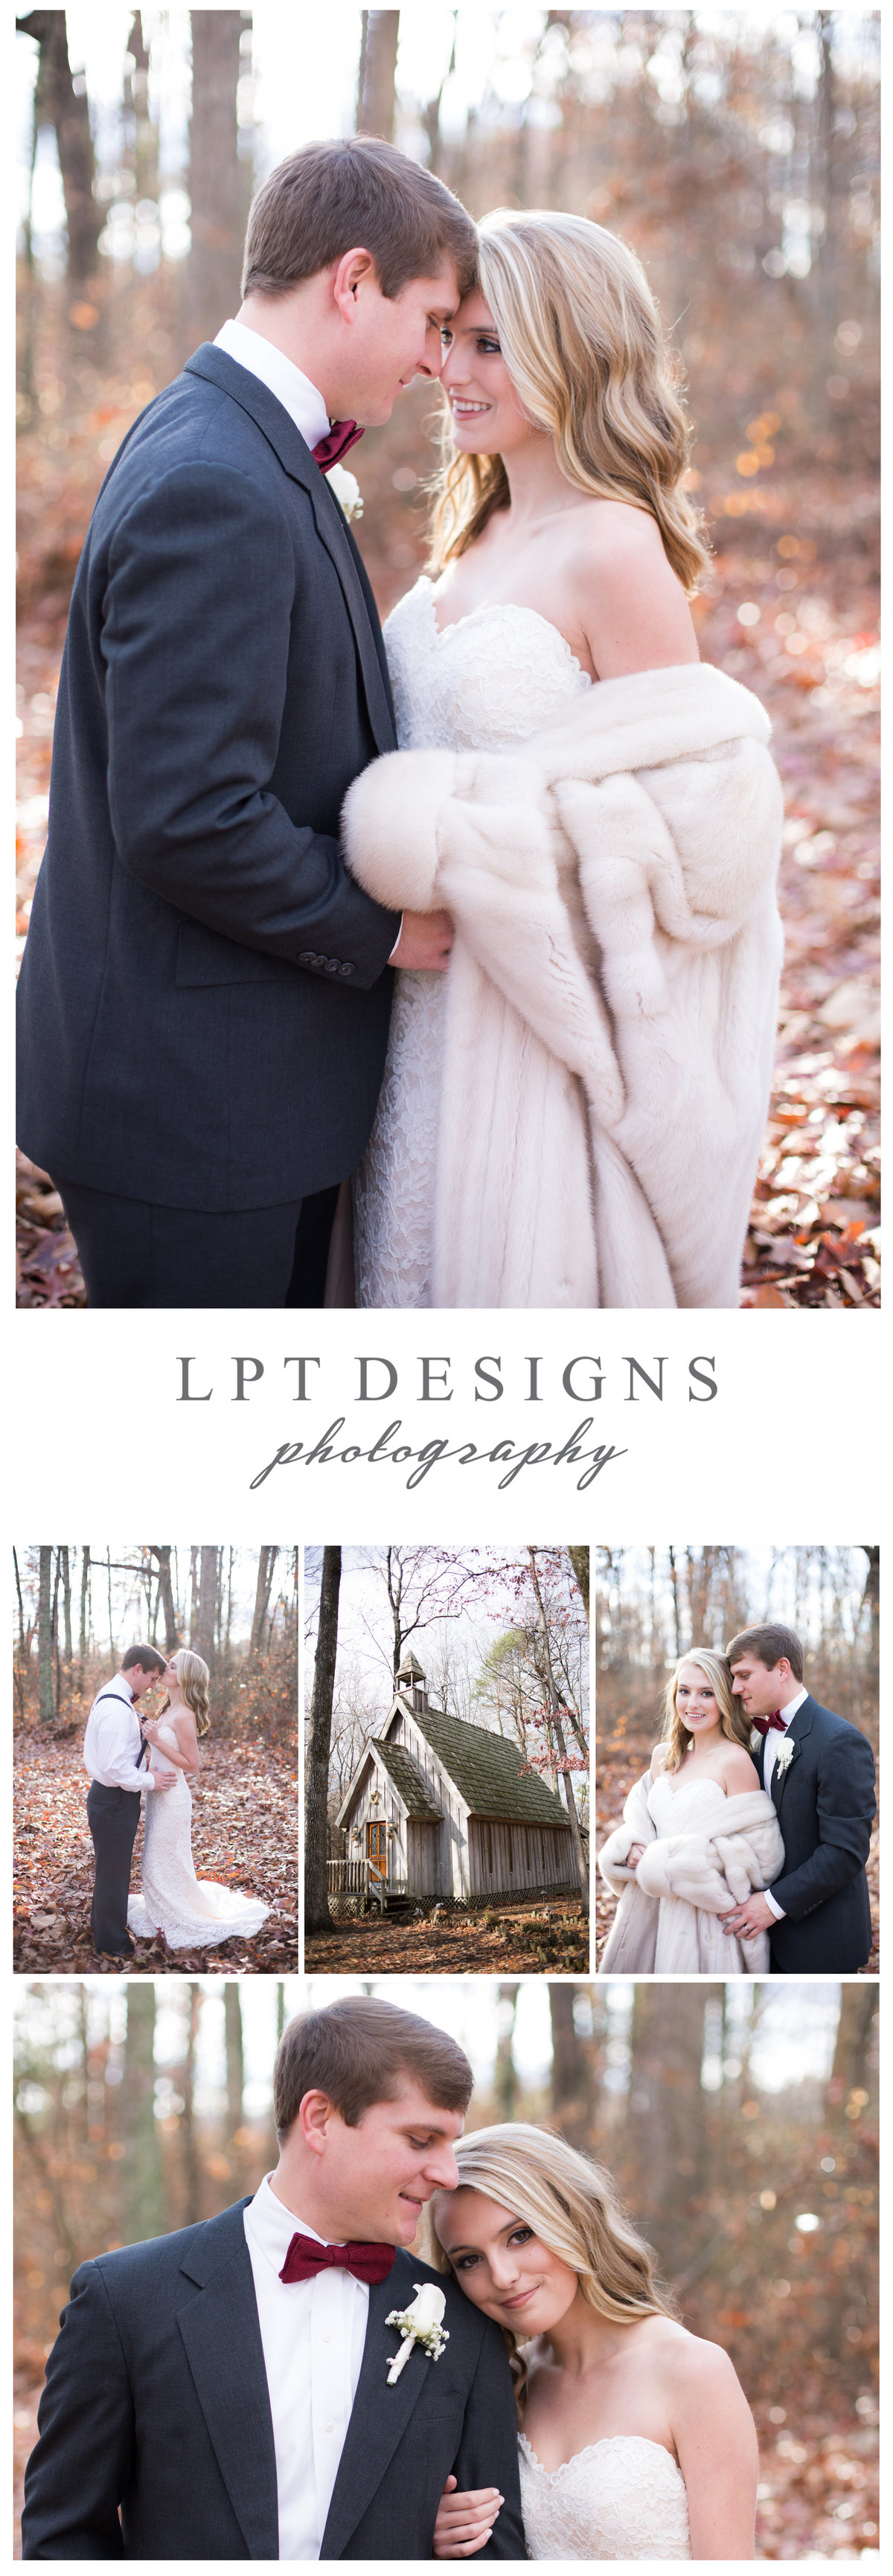 LPT Designs Photography Lydia Thrift Gadsden Alabama Fine Art Wedding Photographer DD1